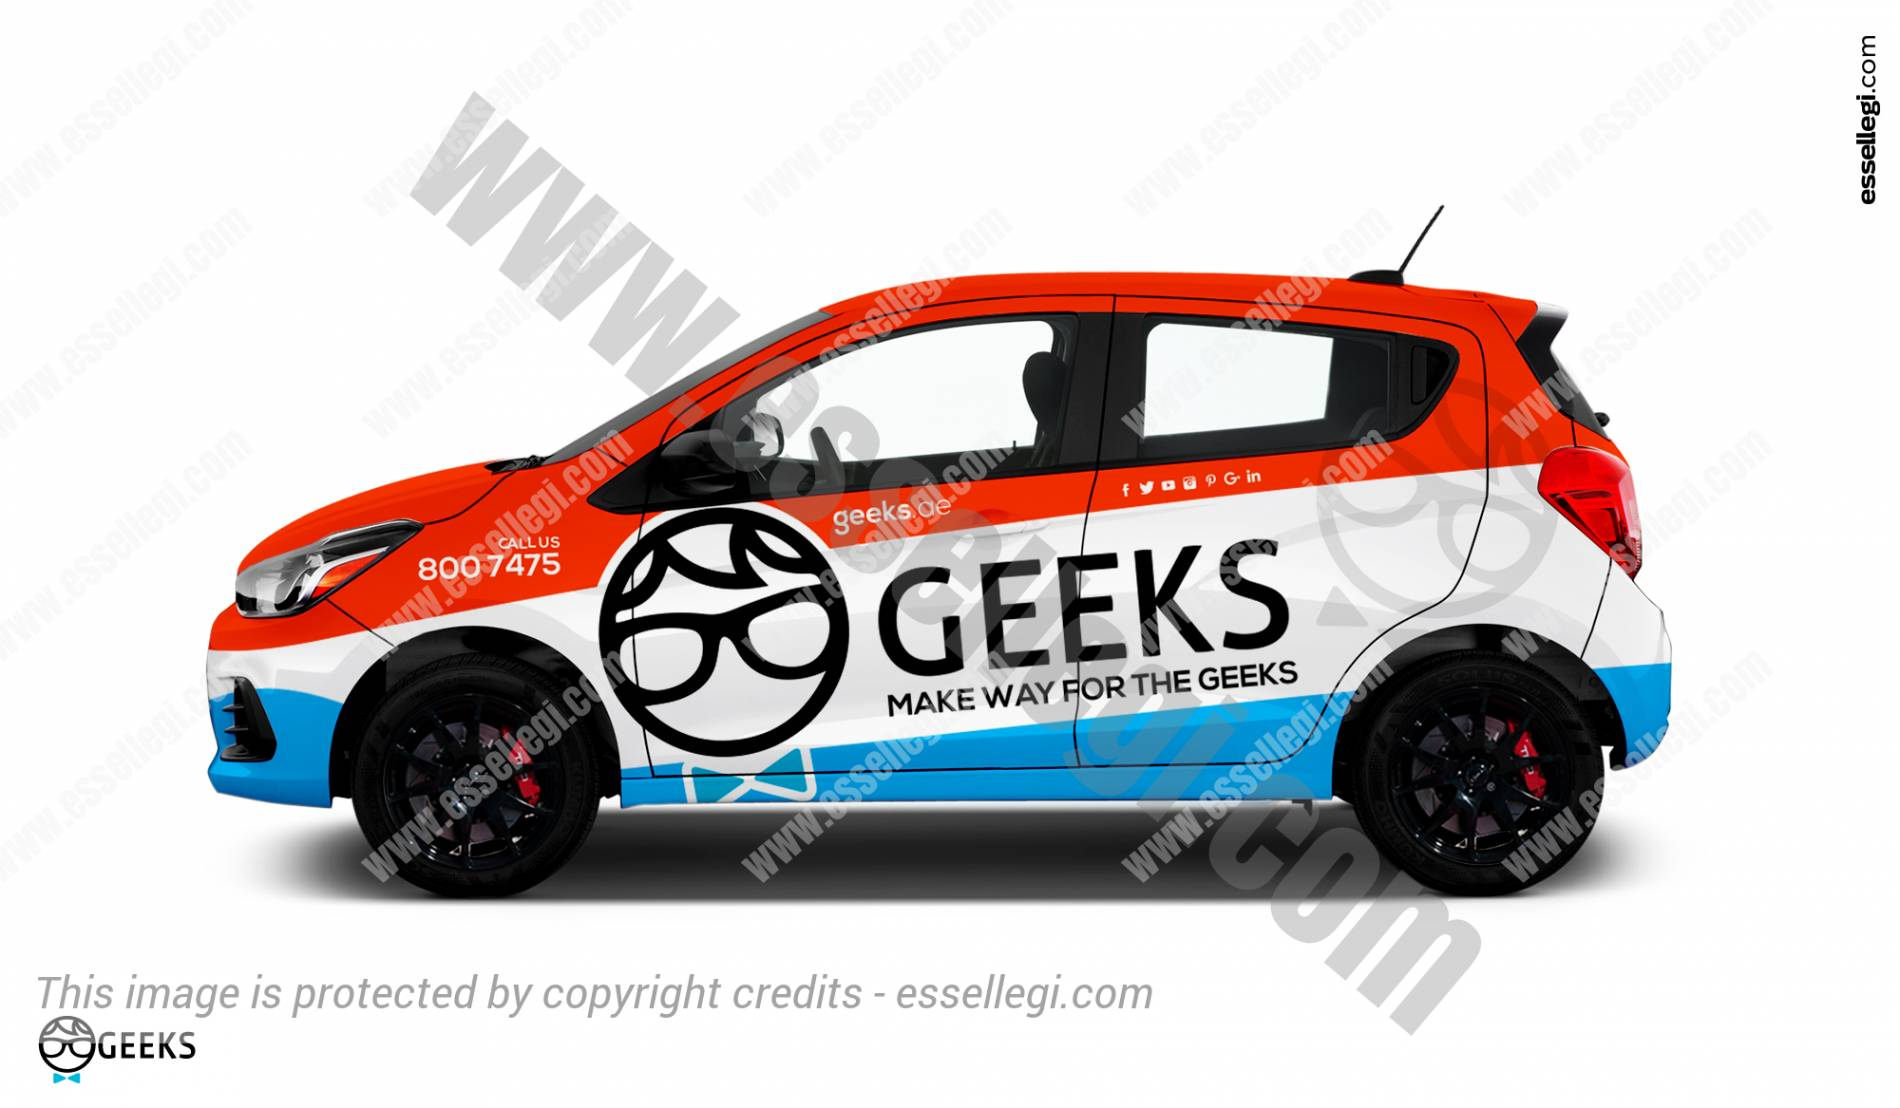 Best Chevrolet Spark Wrap Design For Software Services Company By Essellegi